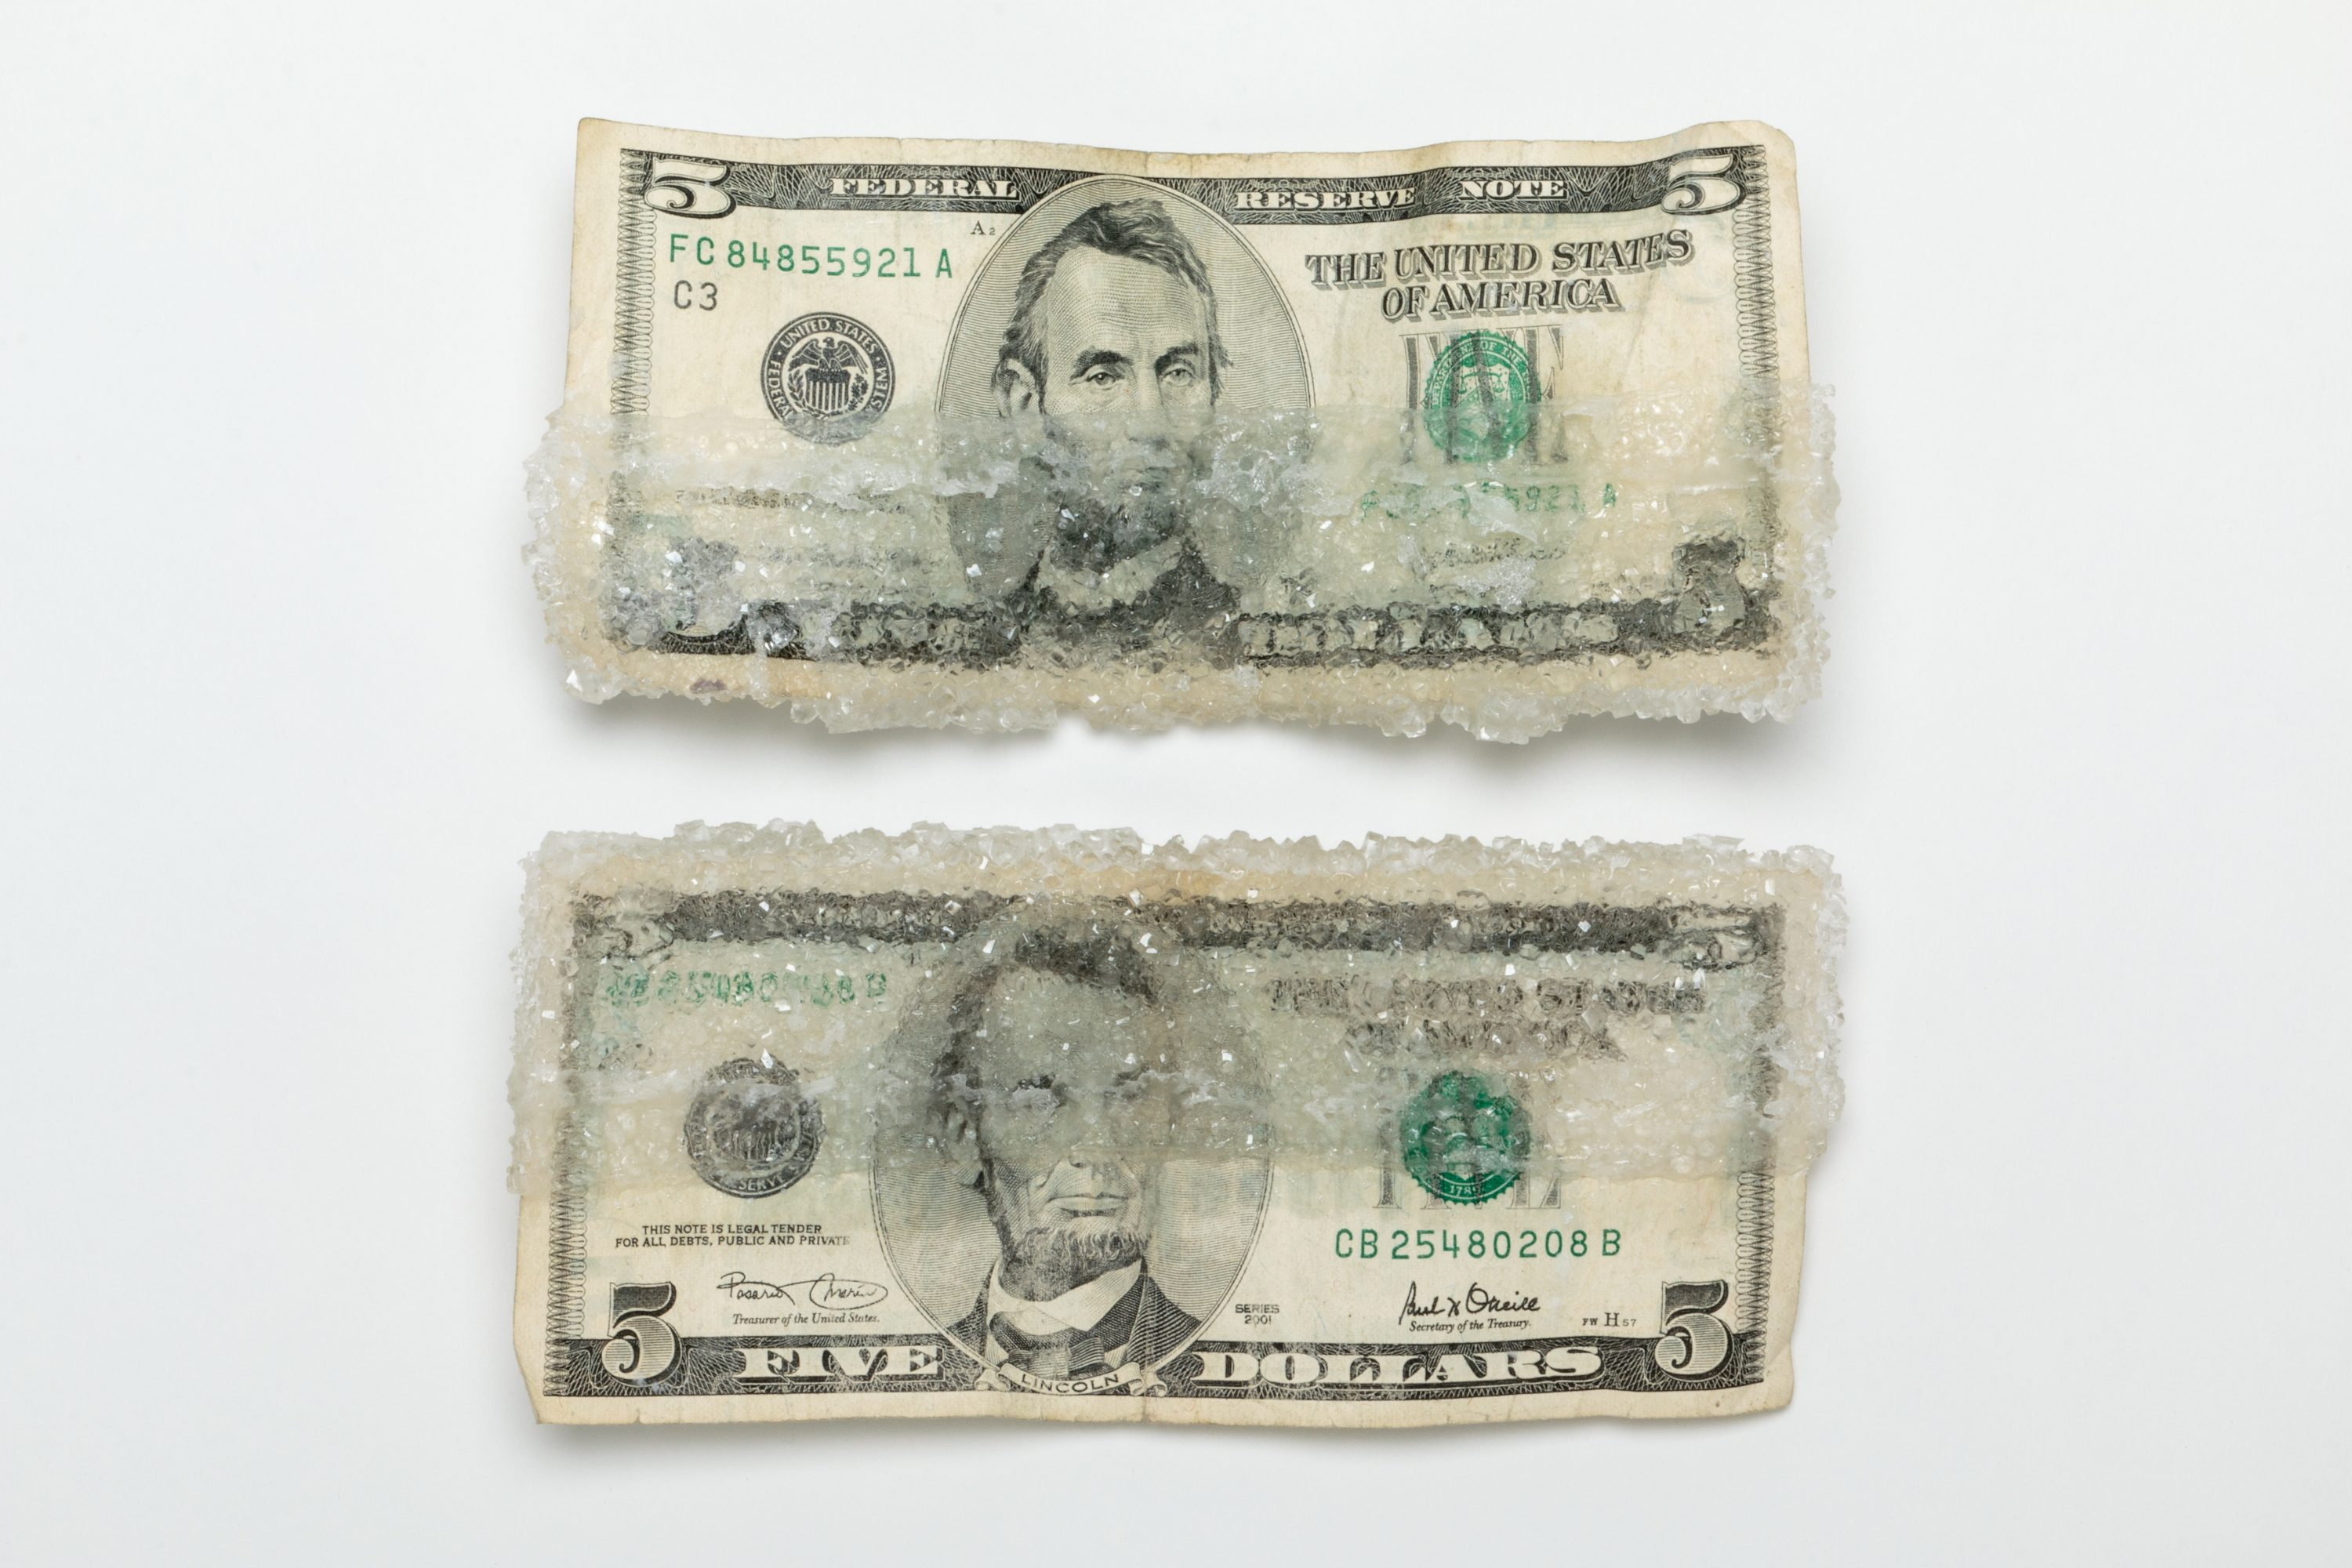 Two five dollar bills lay atop a white background. On the top bill, thick crystals of sugar encrust its lower half; on the bottom bill, thick crystals of sugar encrust its upper half.